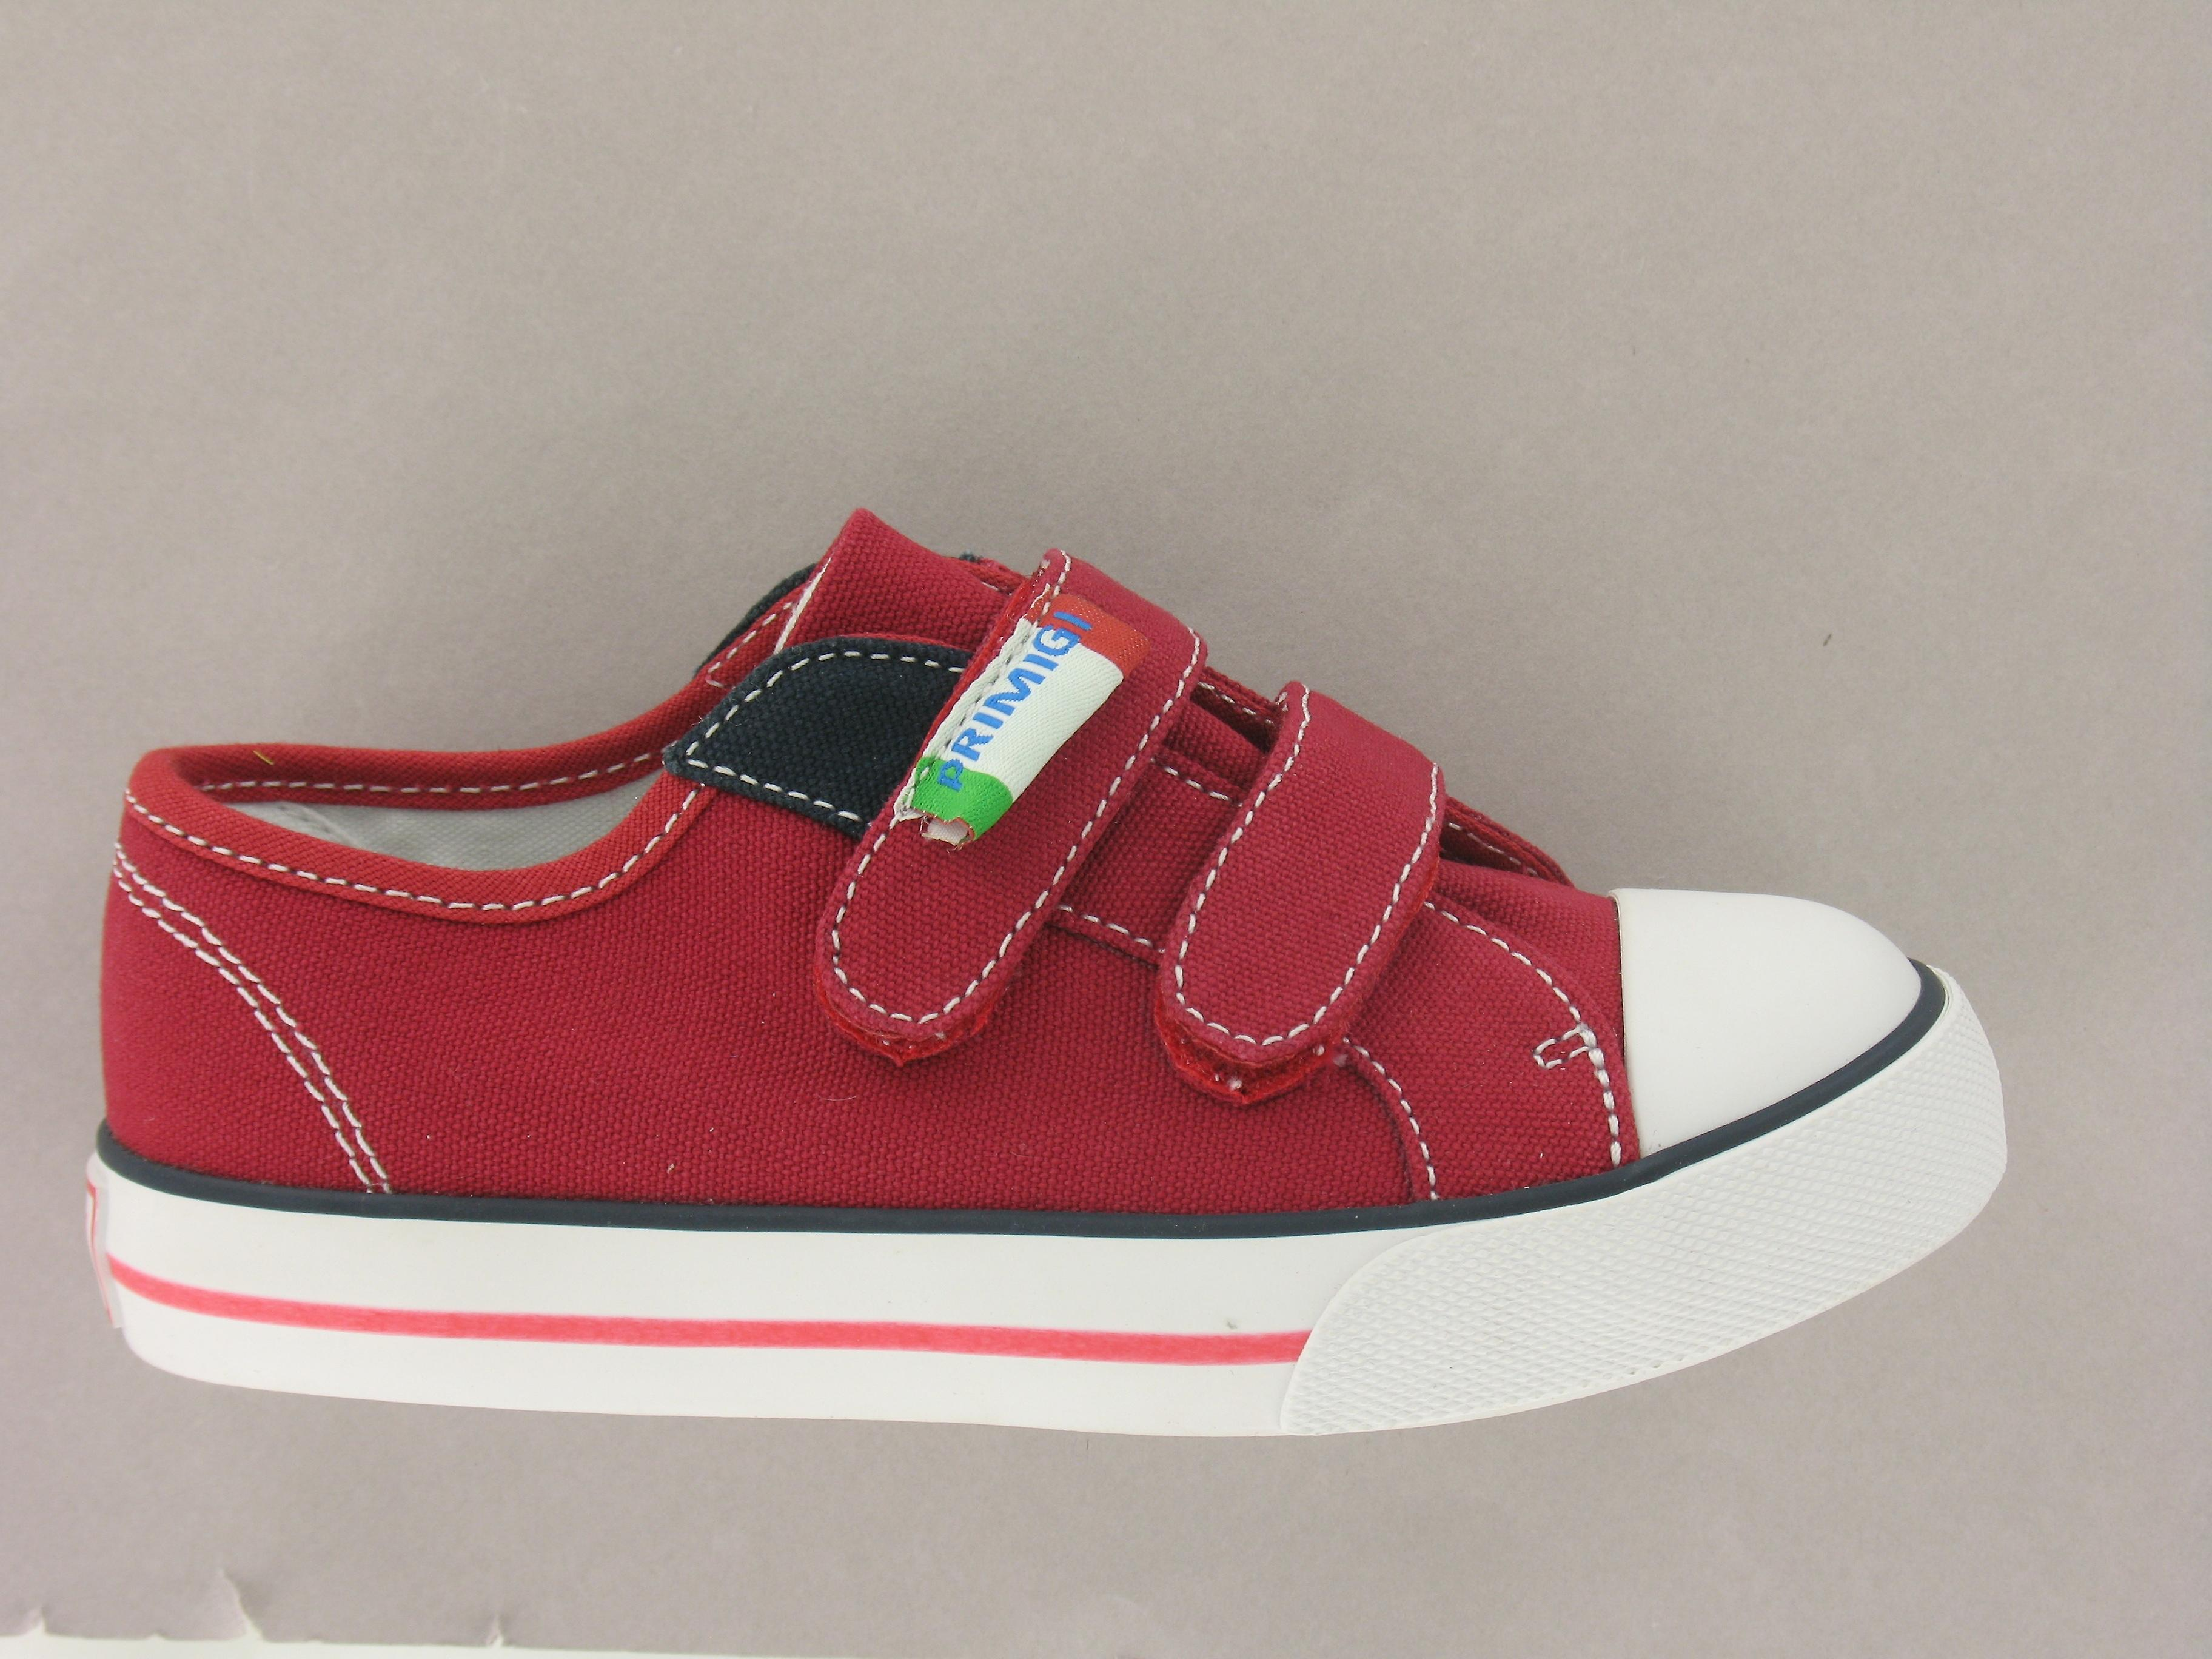 Chaussures Primigi Collège Red Toile